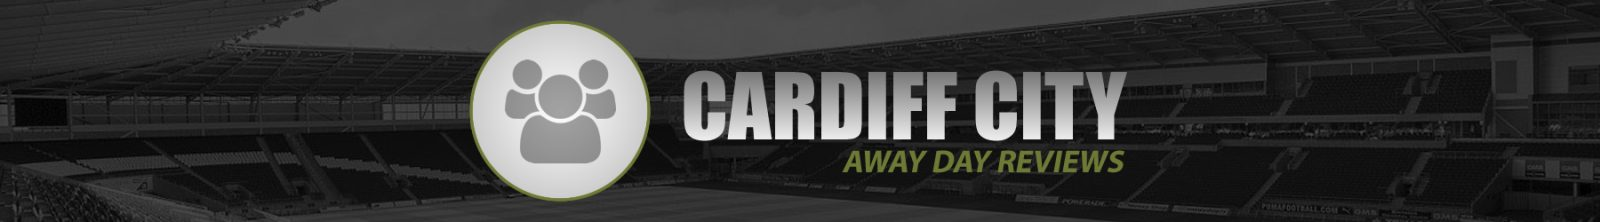 Review Cardiff City